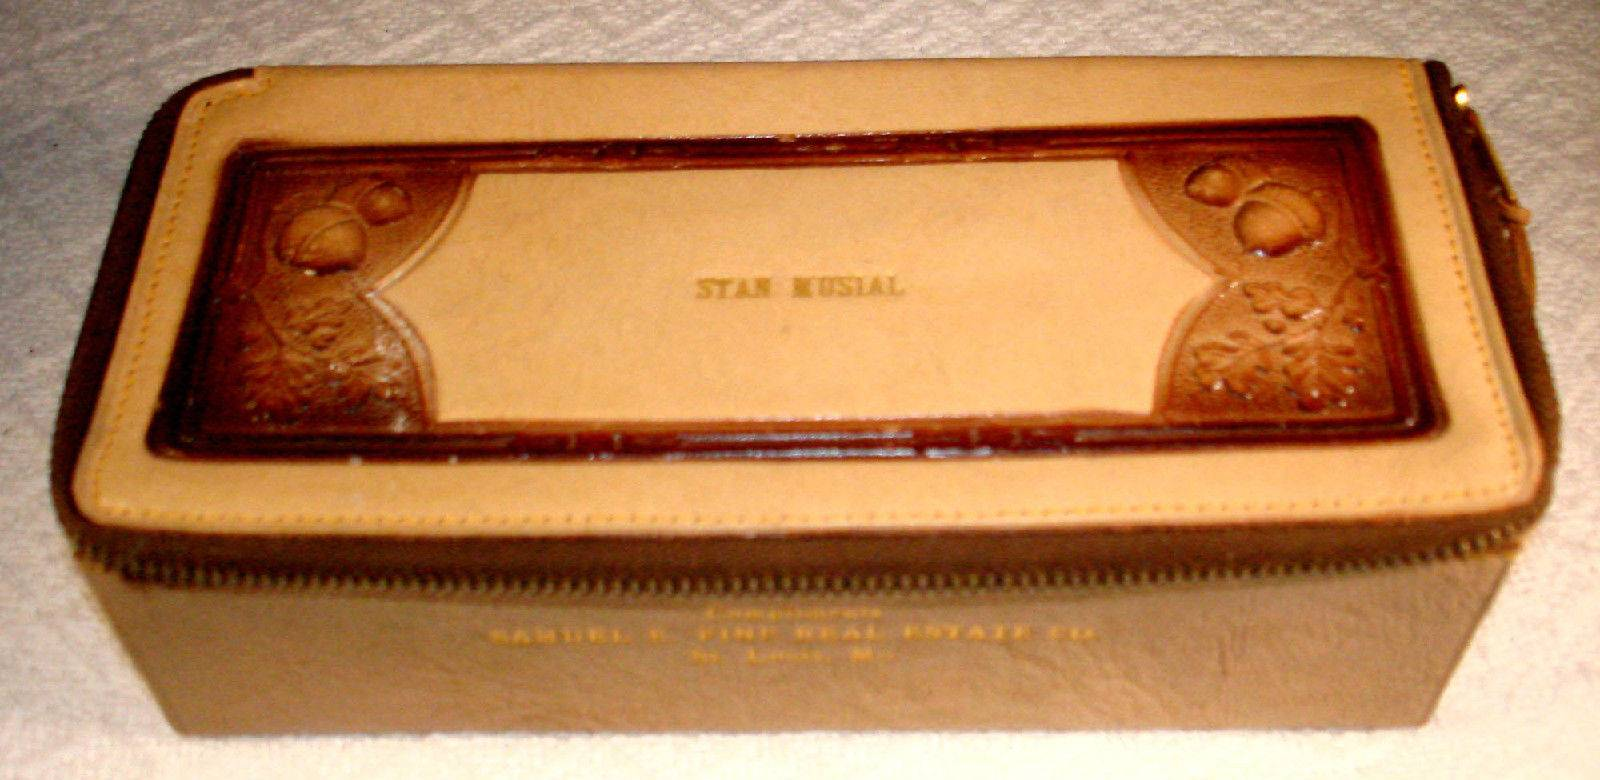 """STAN MUSIAL'S Own Leather Embossed Leather Box 7'x3""""x2"""""""